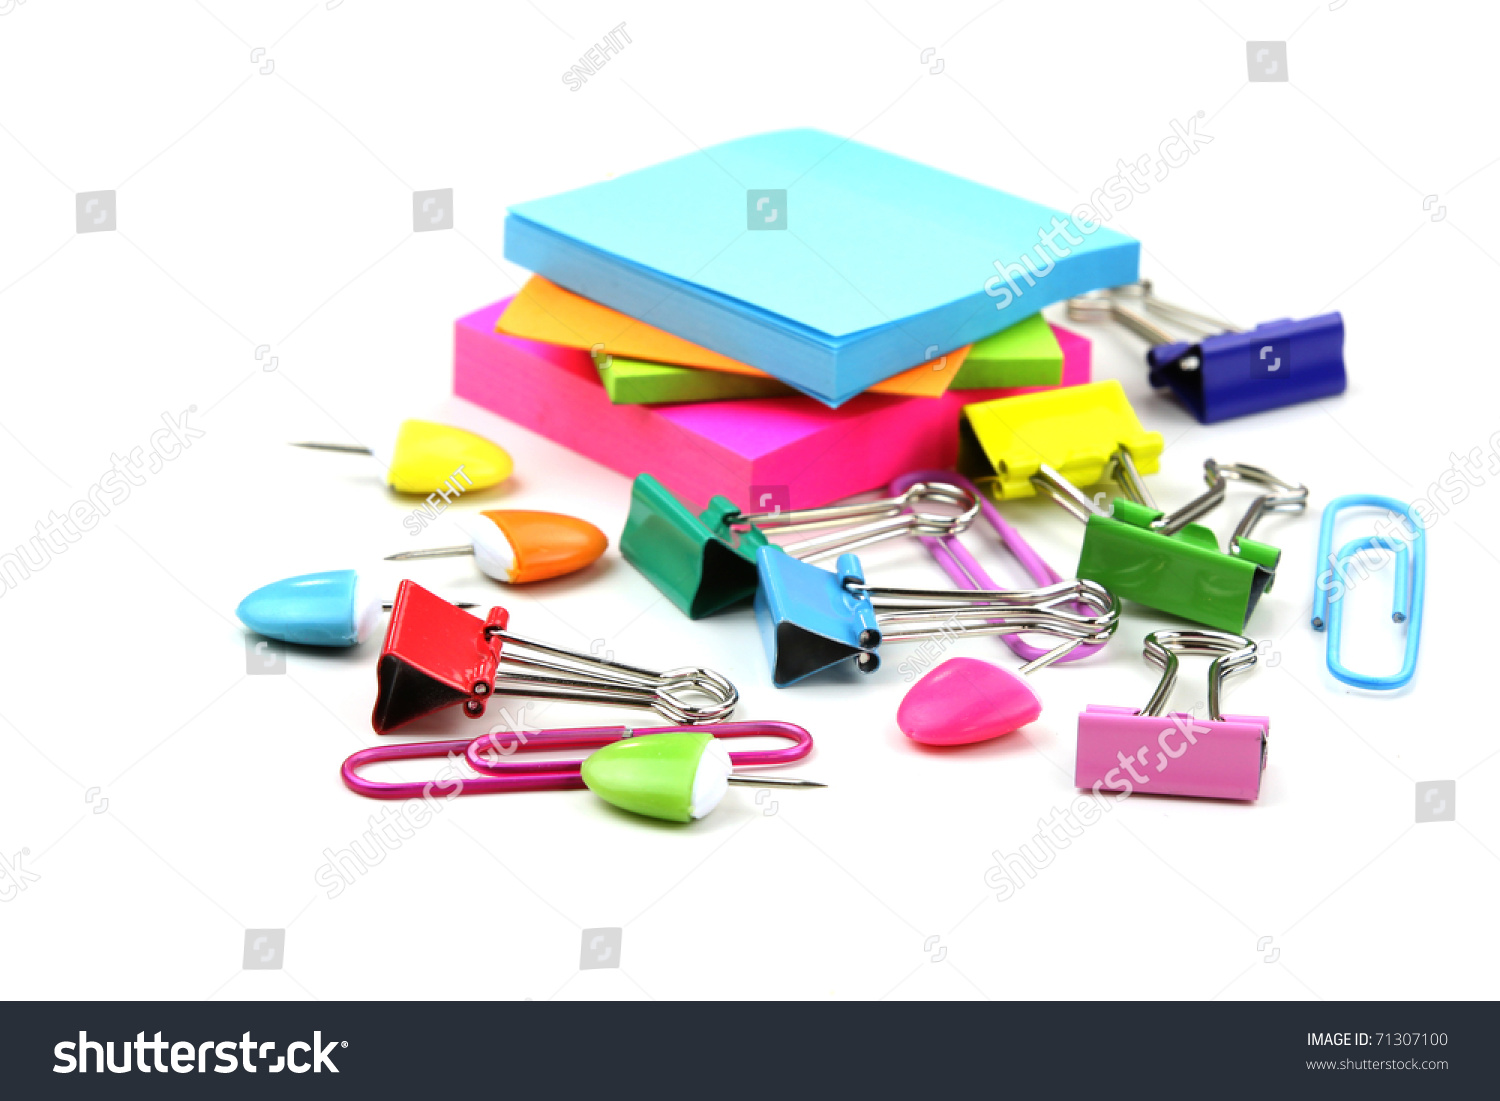 Colorful Office Supplies On White Background Stock Photo